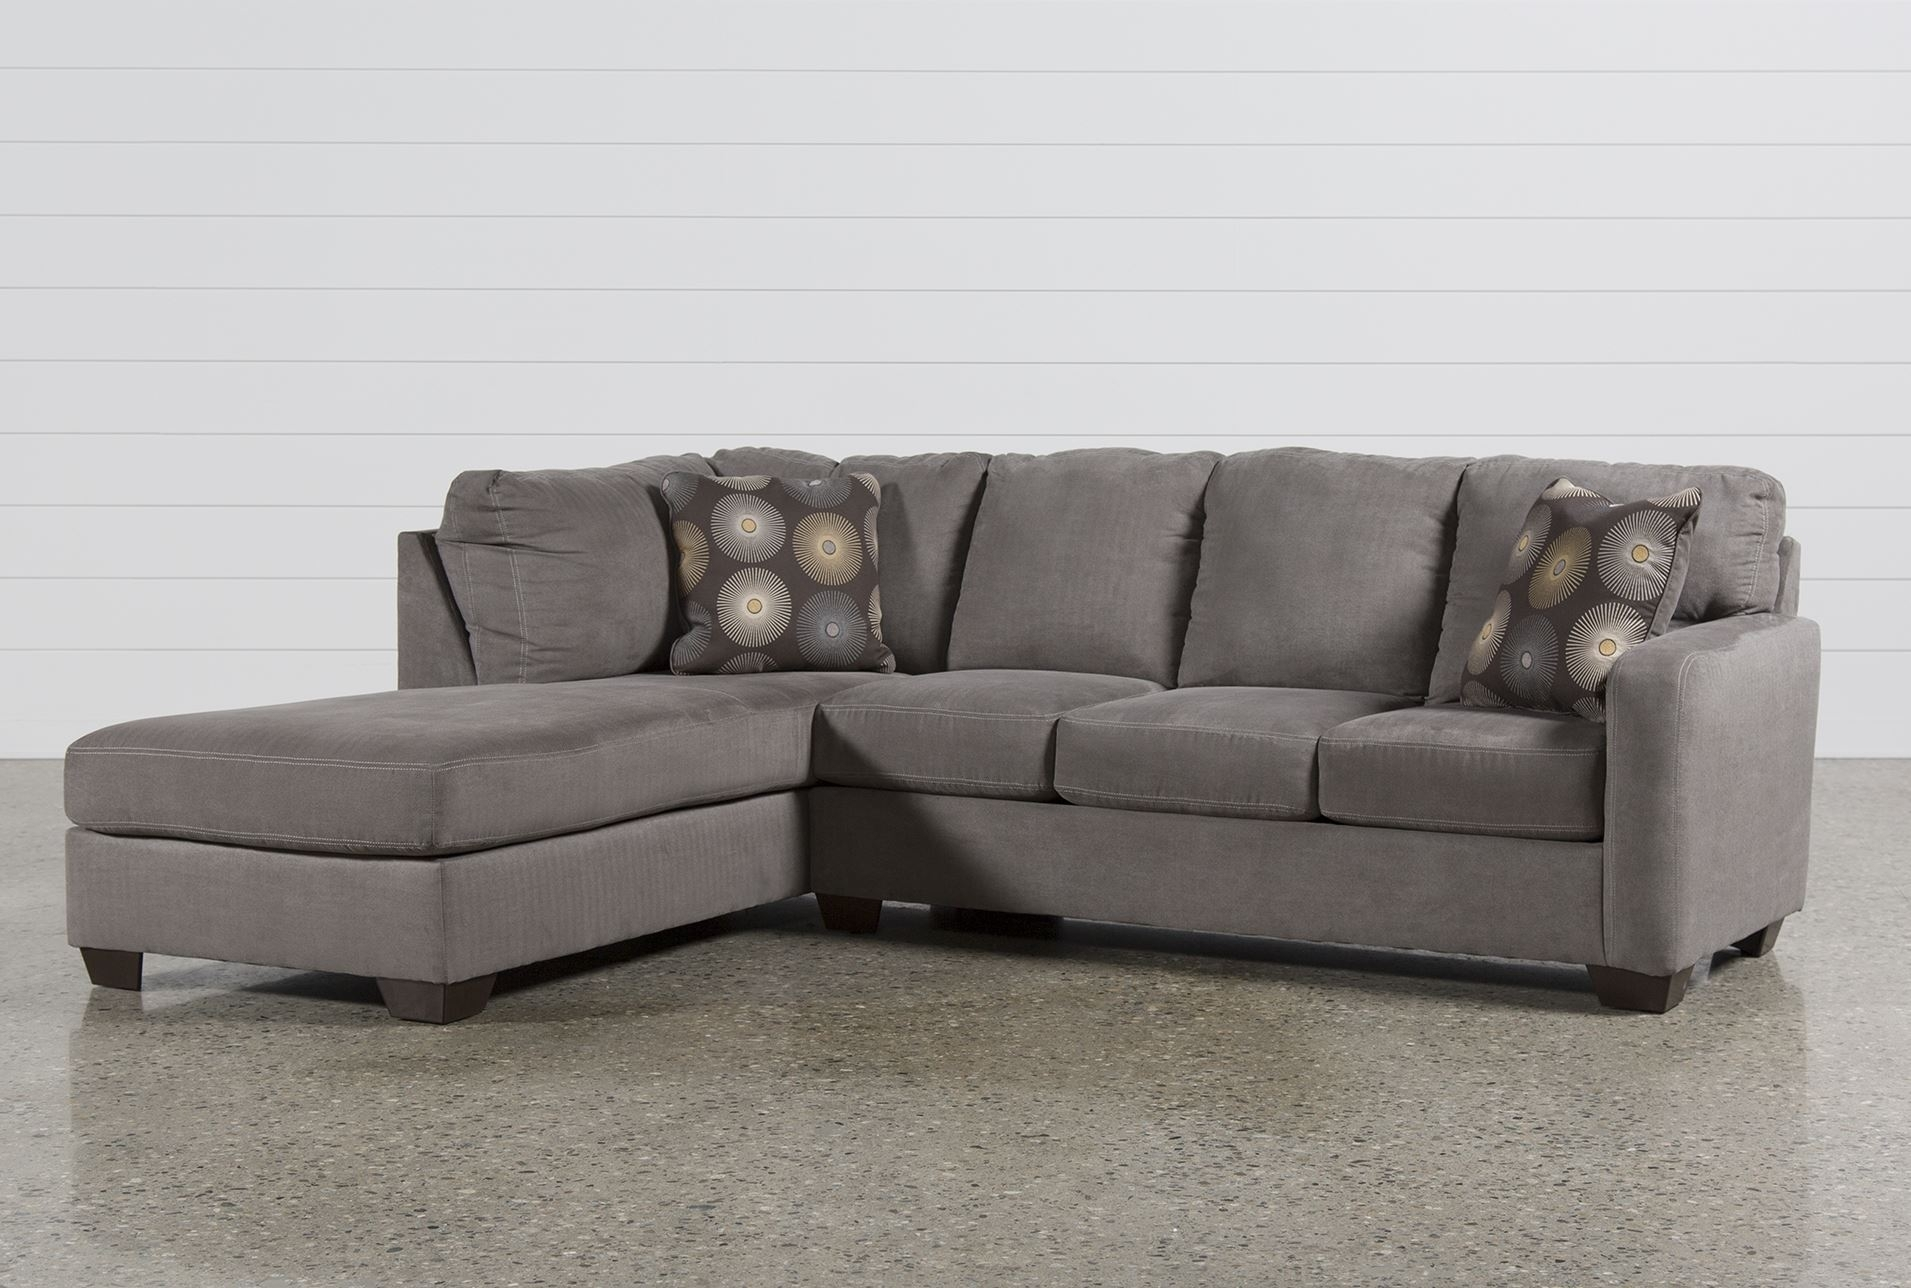 Laf Chaise Sectional Sofa | Baci Living Room with regard to Arrowmask 2 Piece Sectionals With Laf Chaise (Image 10 of 30)